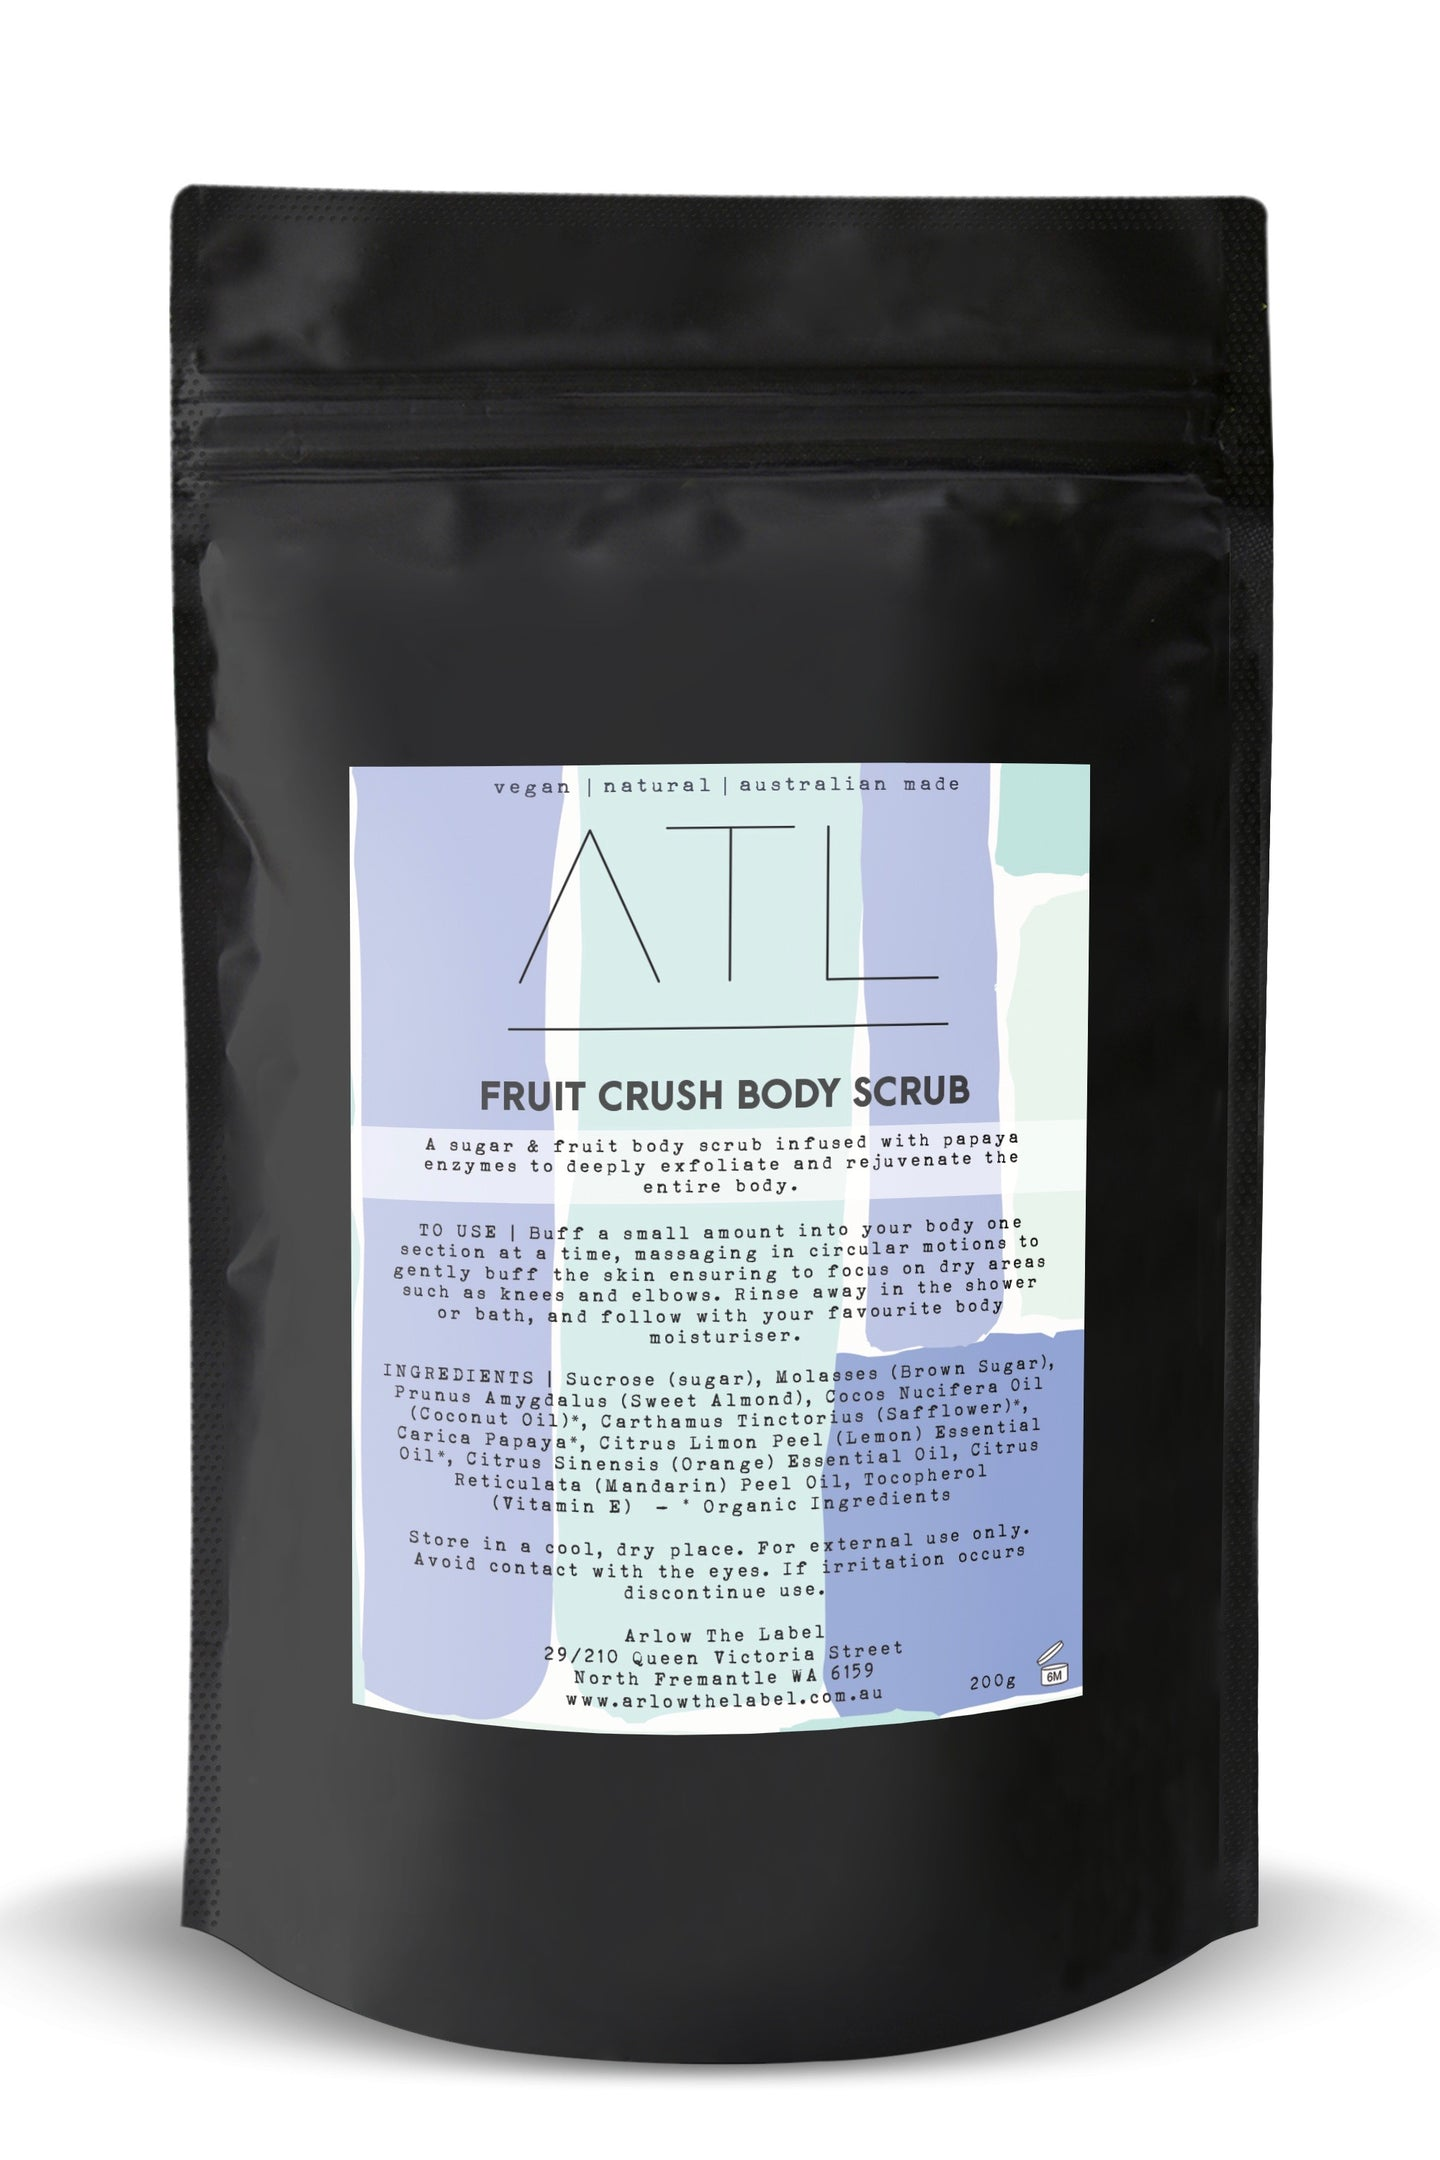 FRUIT CRUSH BODY SCRUB